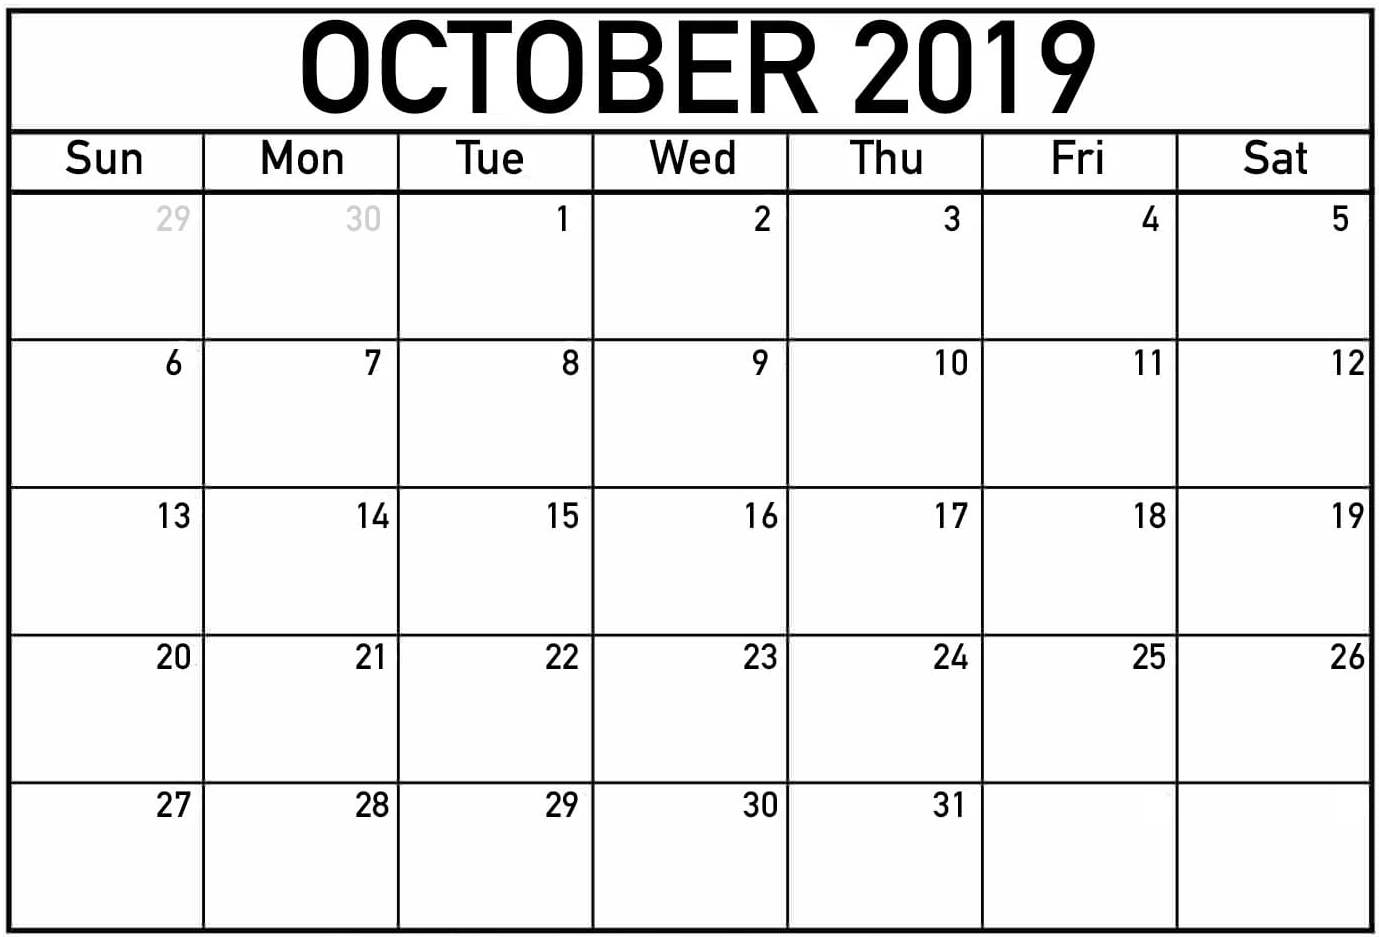 Free Printable October 2019 Calendar Page - 2019 Calendars